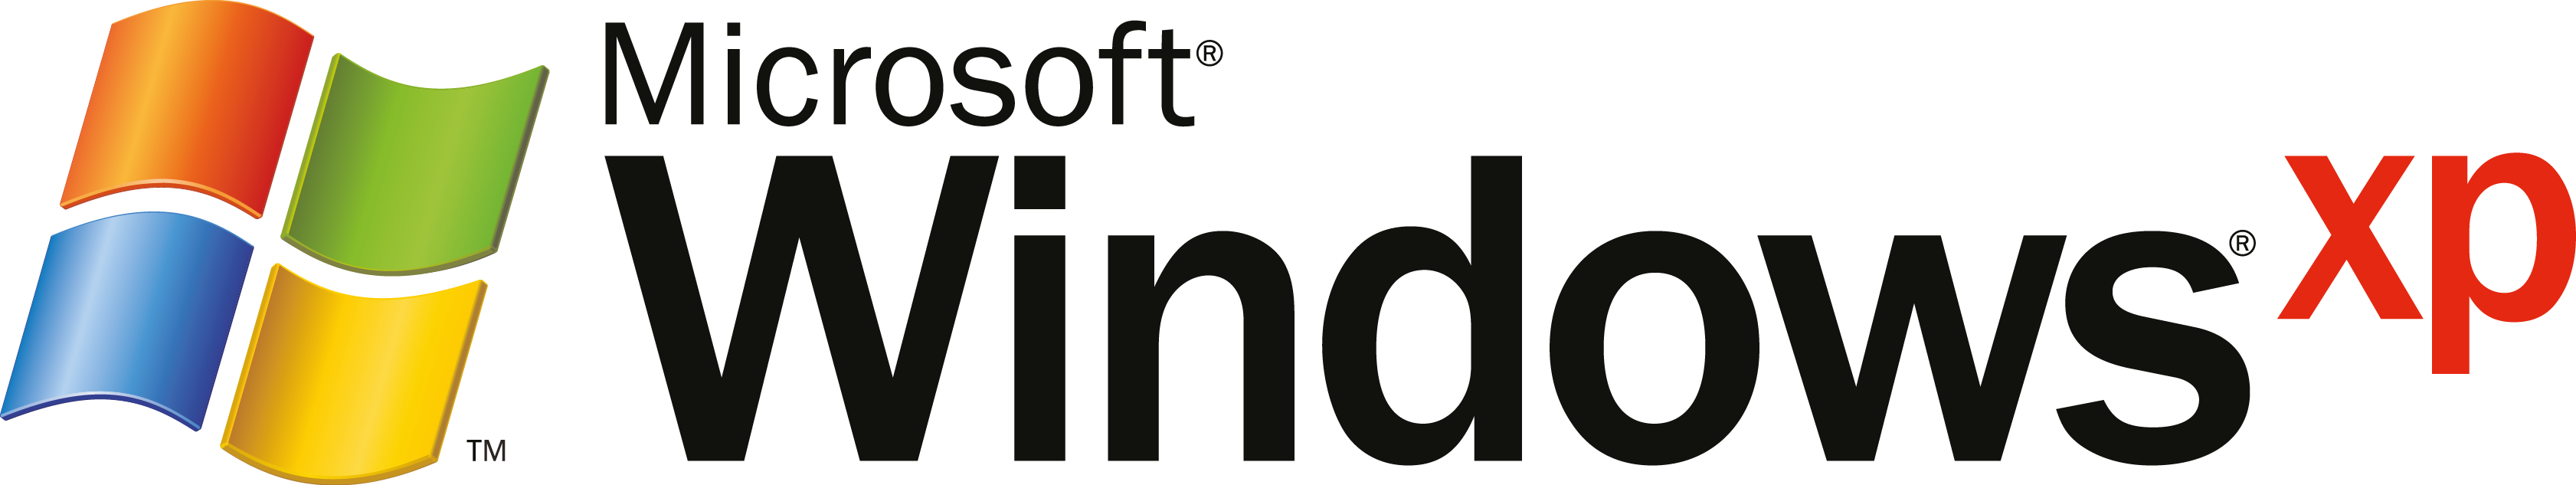 Grab and download Windows Logos PNG Picture